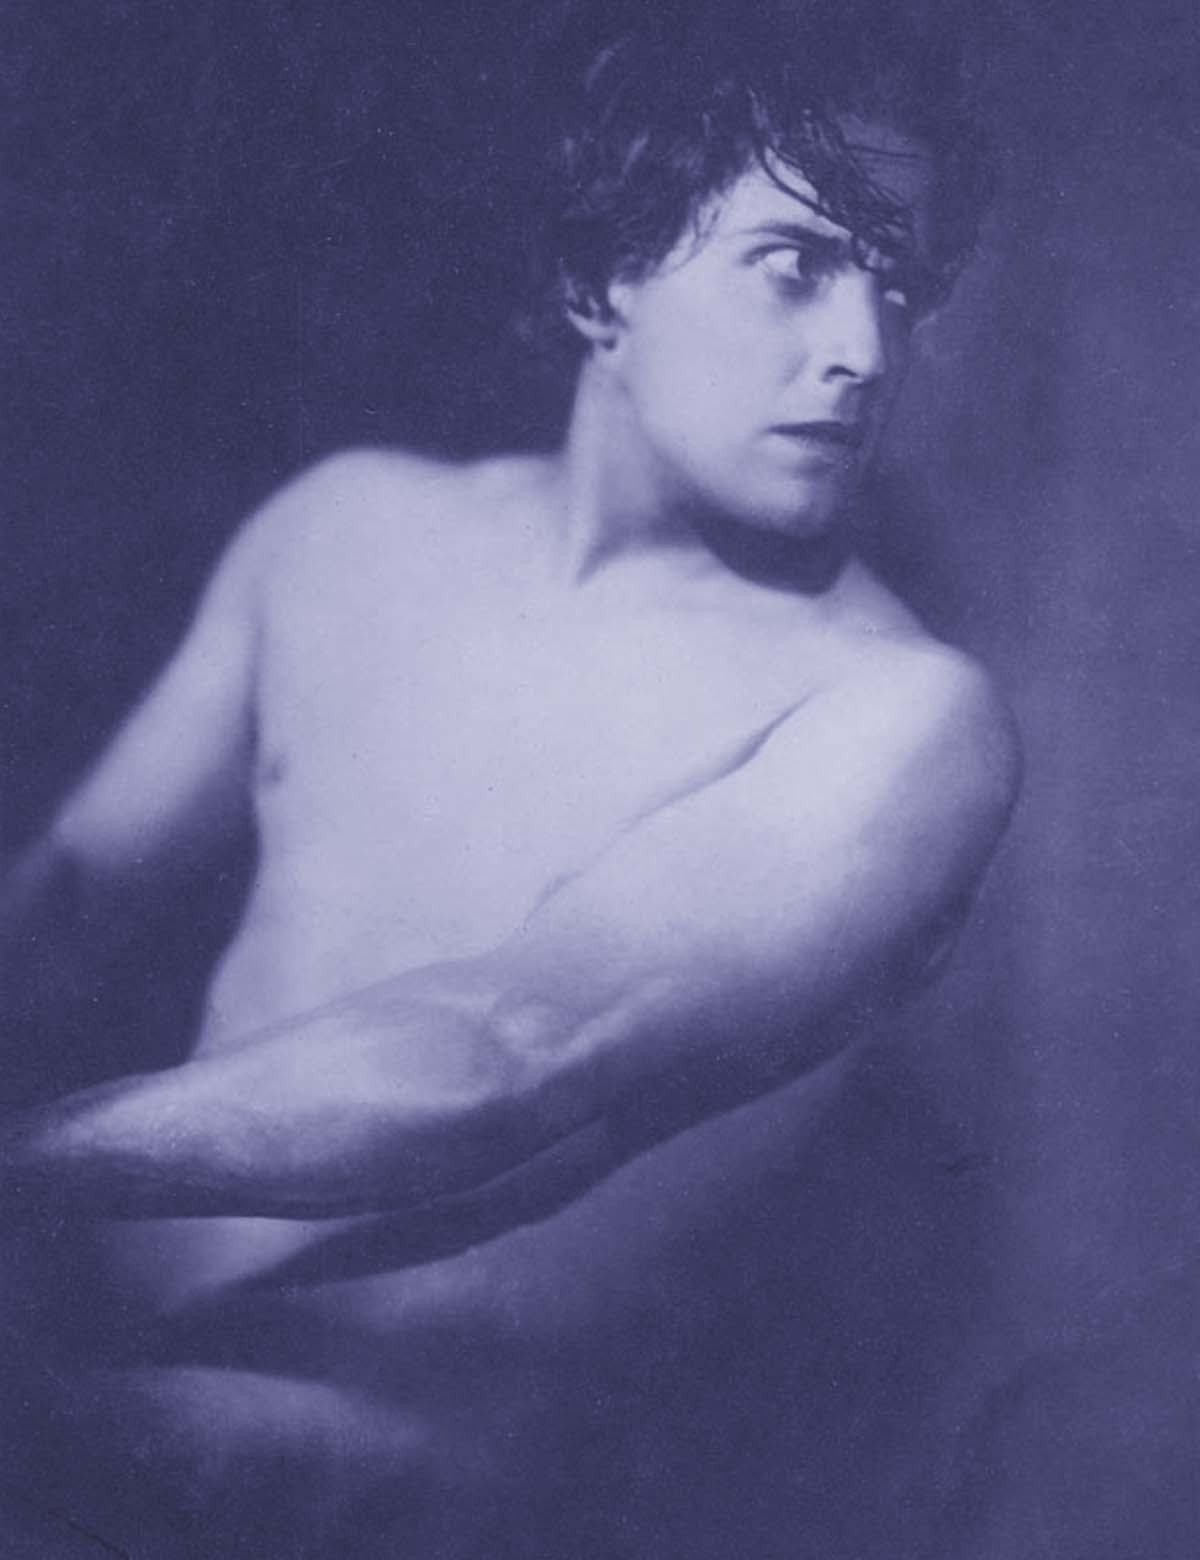 Ramon Novarro naked and famous Ben-Hur